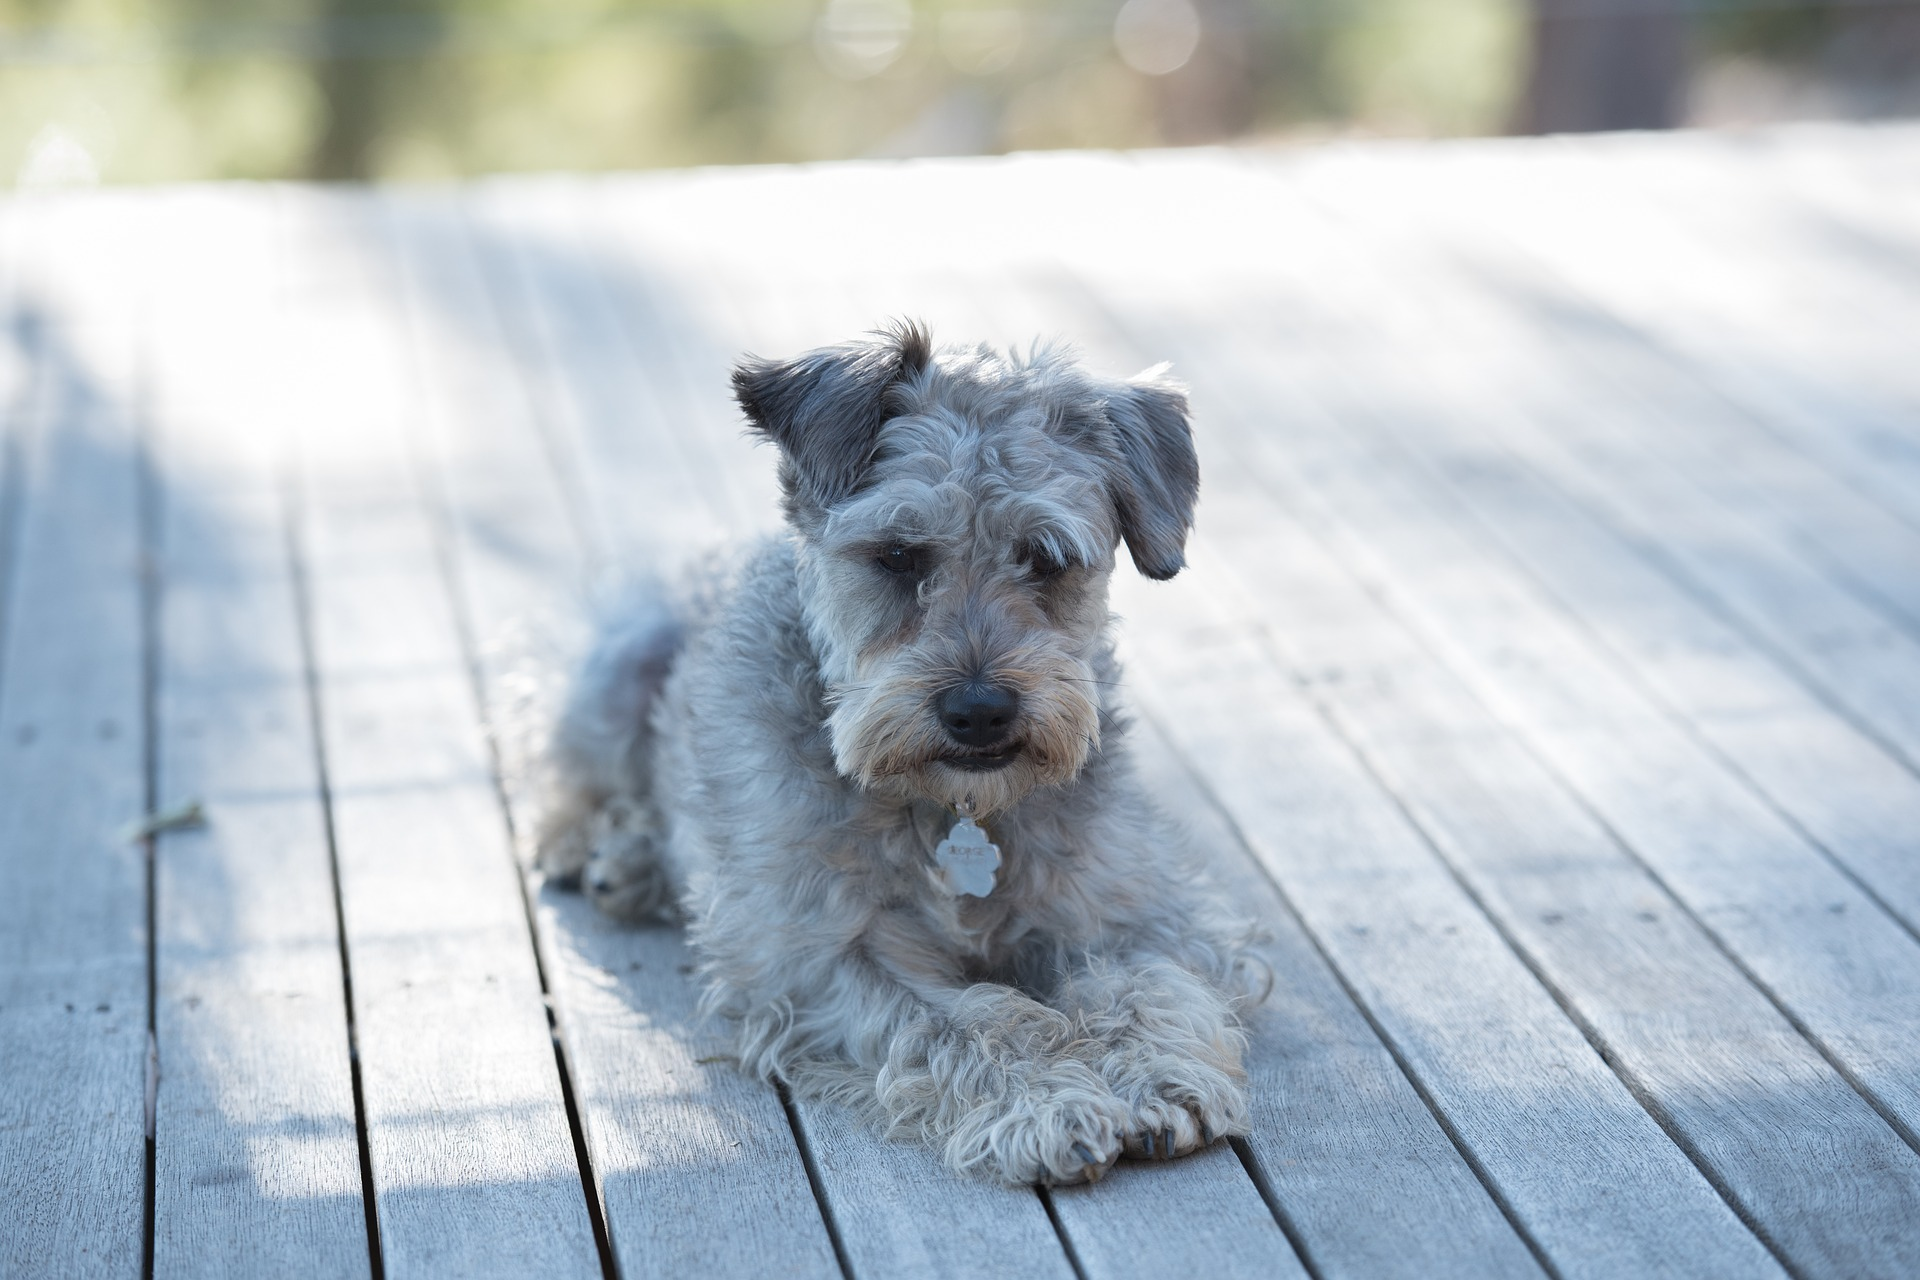 A grey Schnoodle Dog, a hybrid between Schnauzer and Poodle dog.